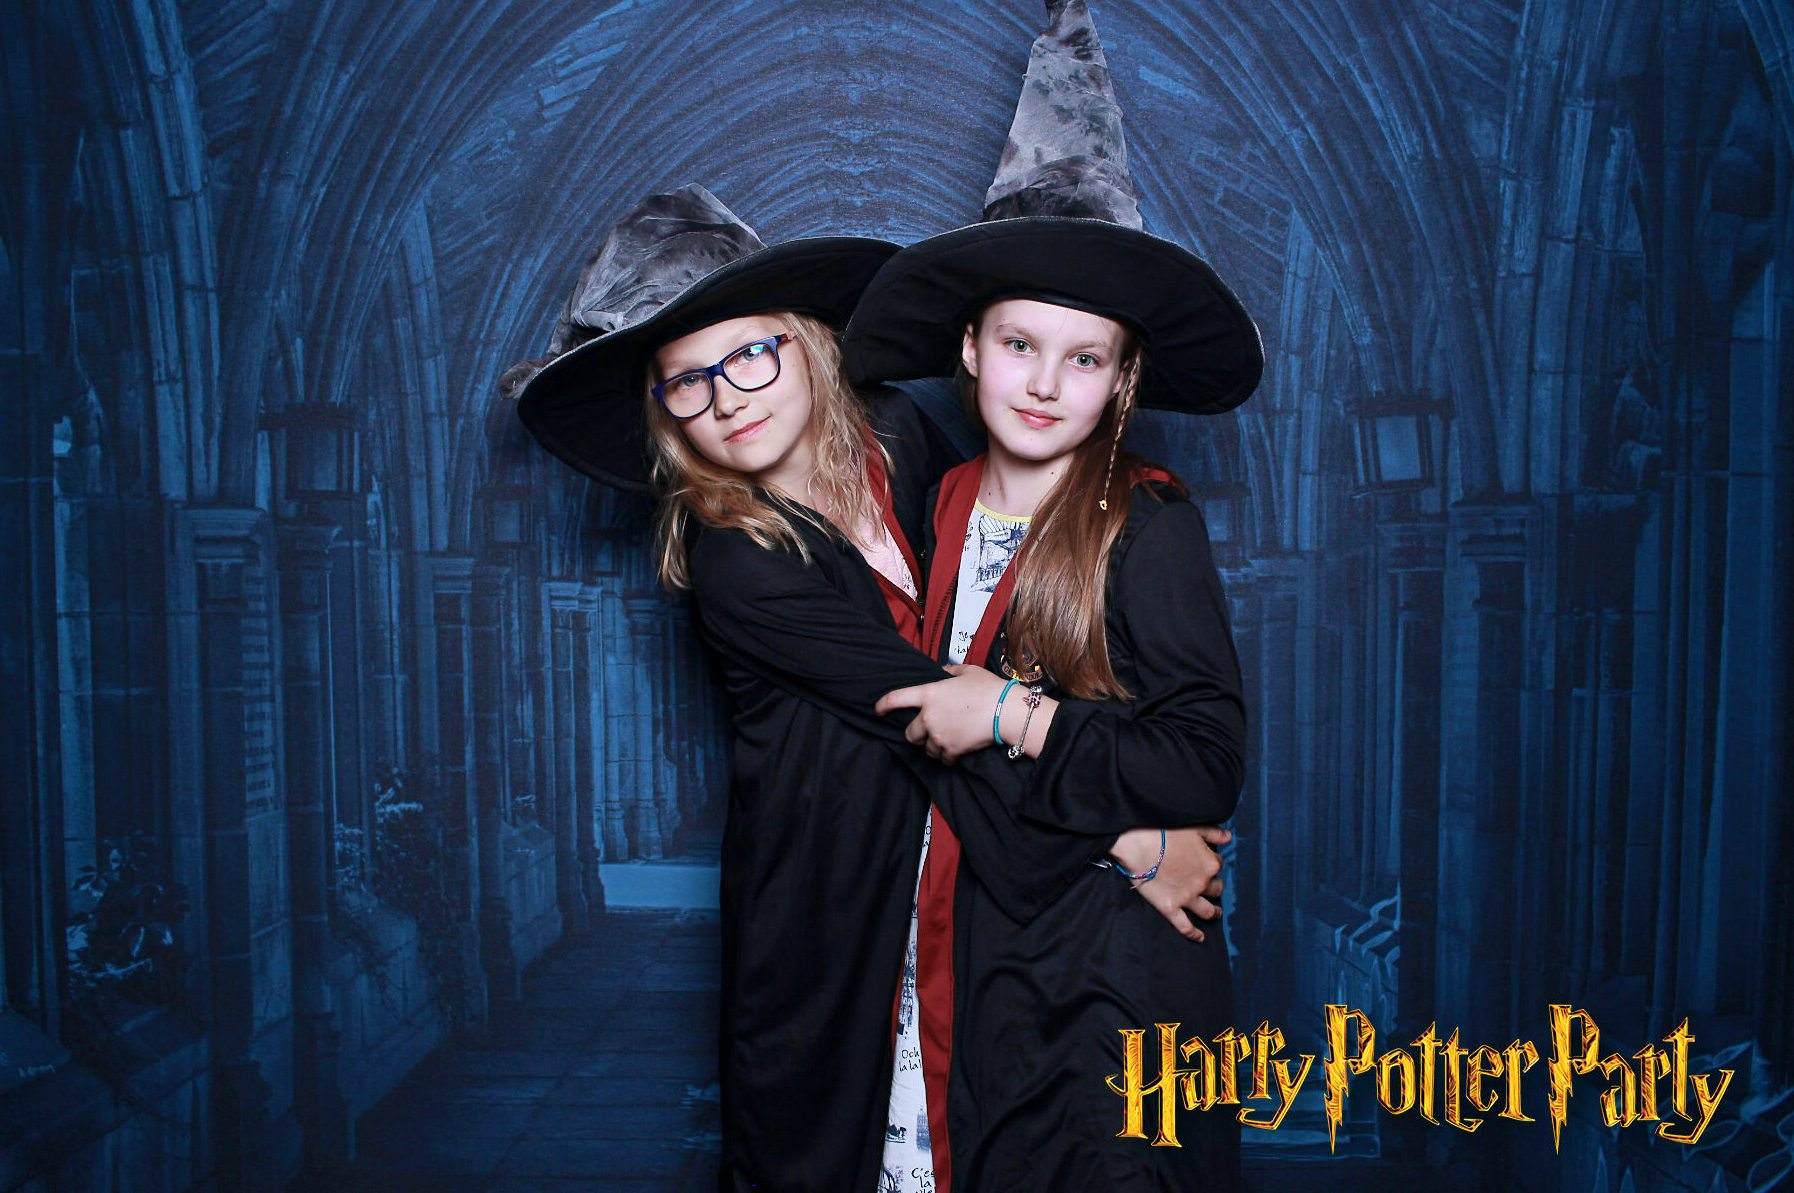 fotokoutek-harry-potter-14-5-2018-418672